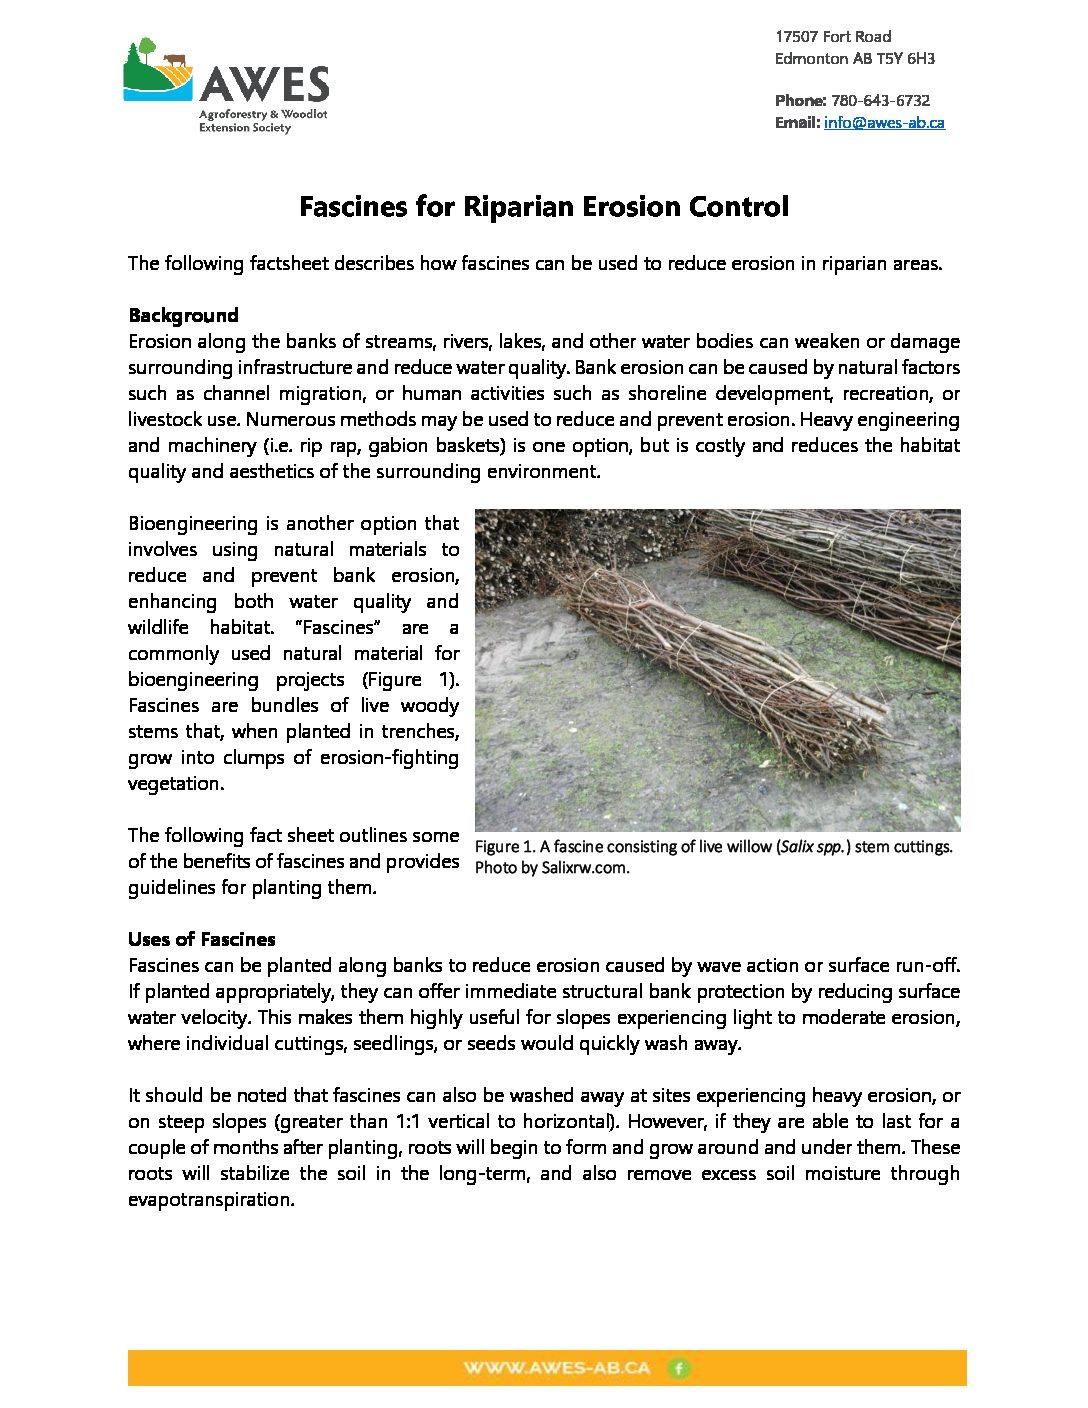 Fascines for Riparian Erosion Control